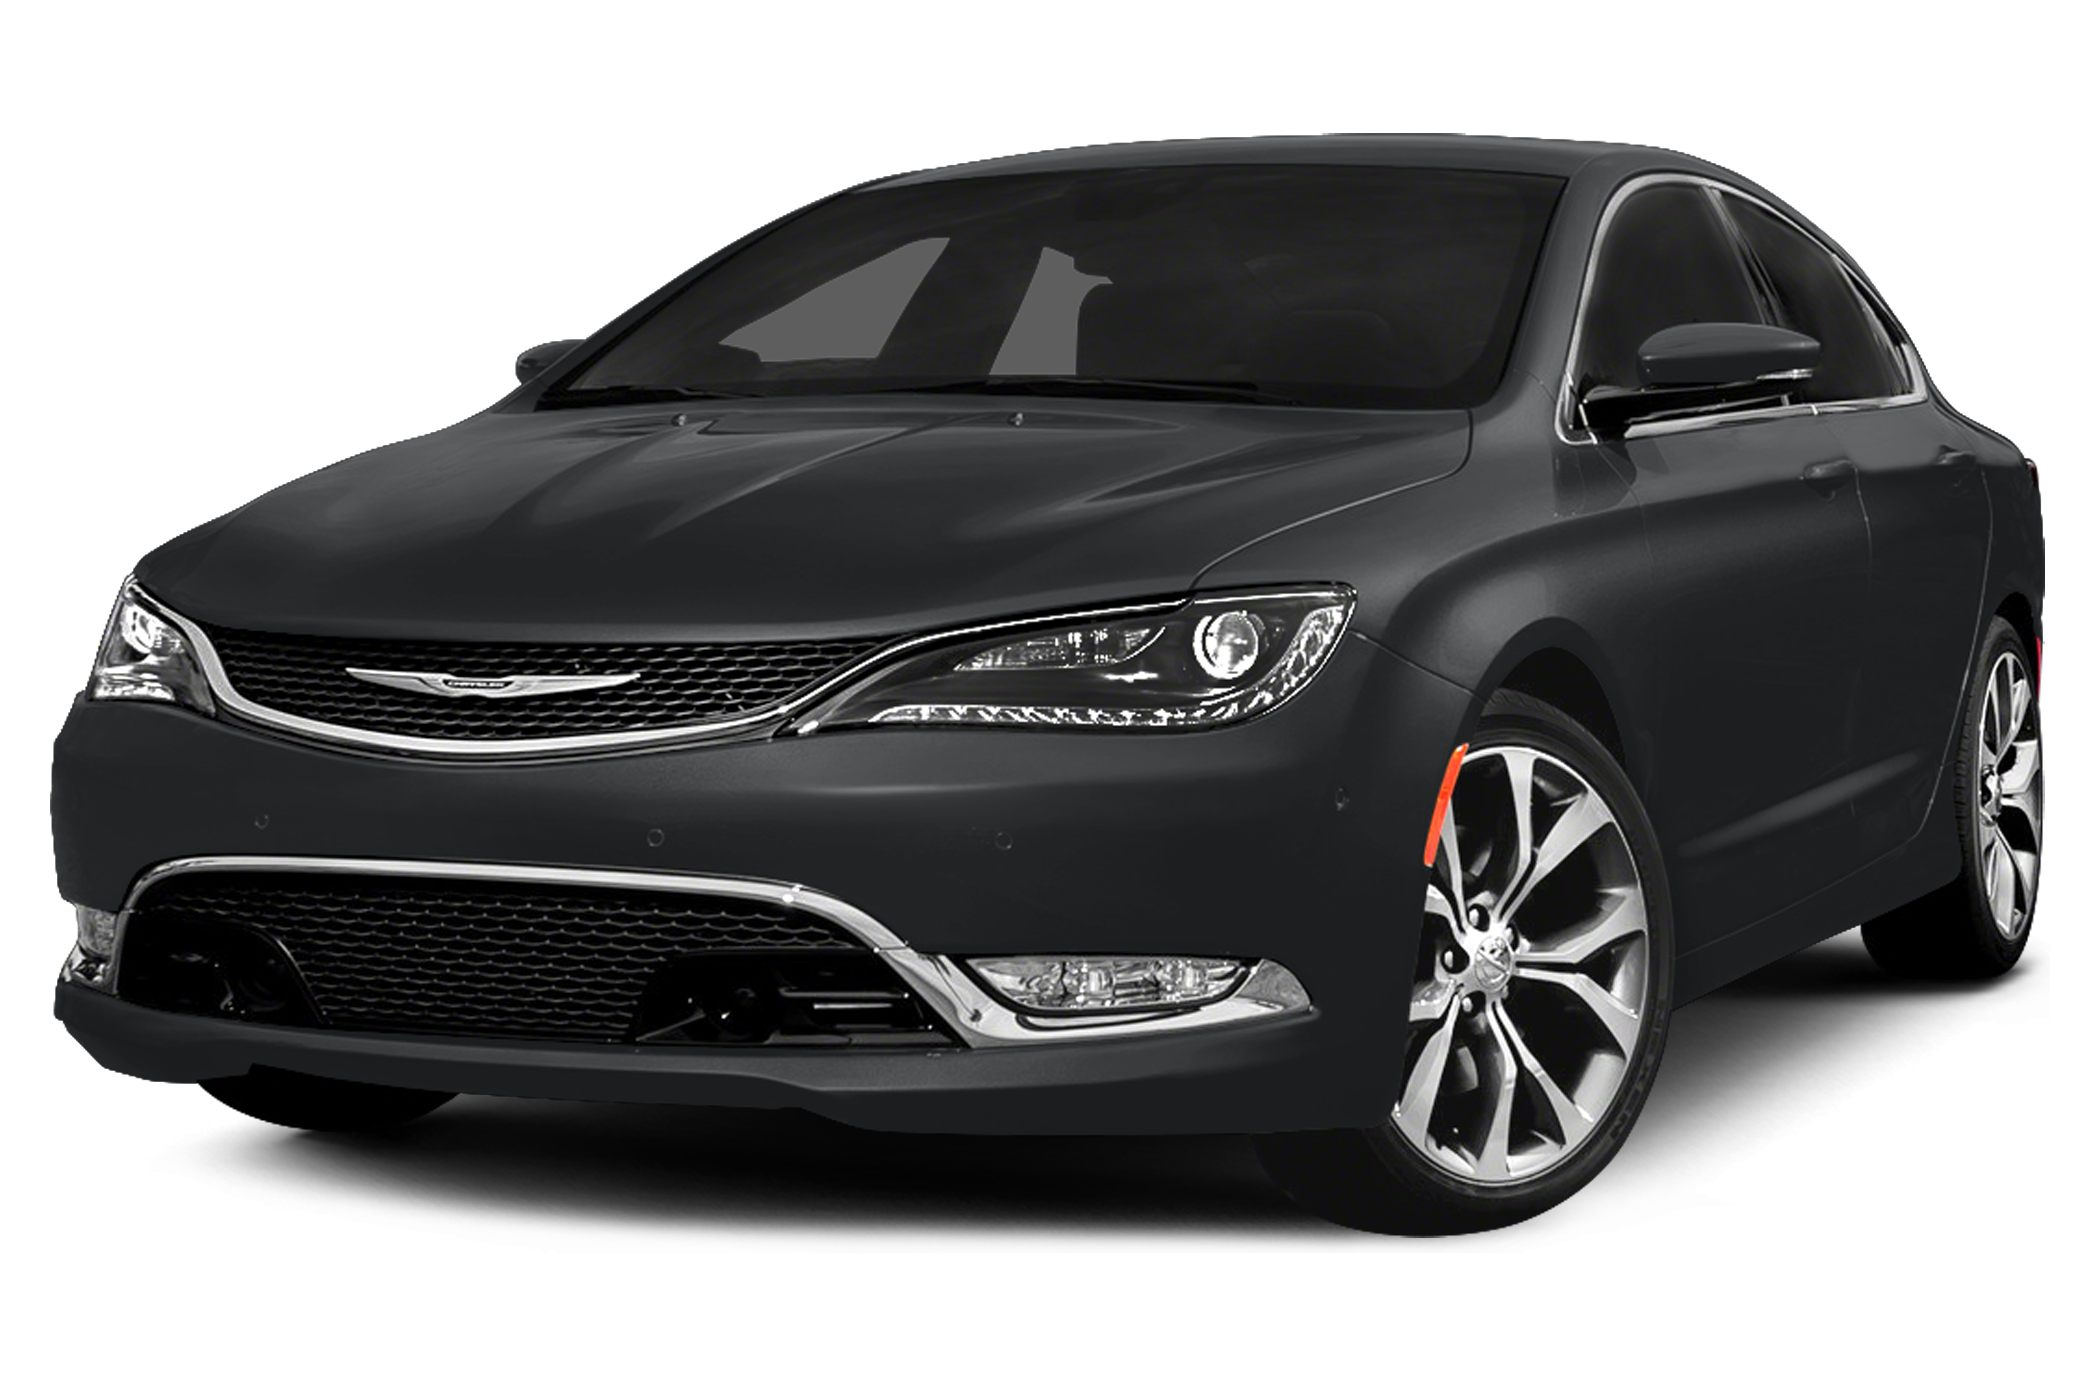 2015 Chrysler 200 Limited Sedan for sale in Birmingham for $25,475 with 0 miles.